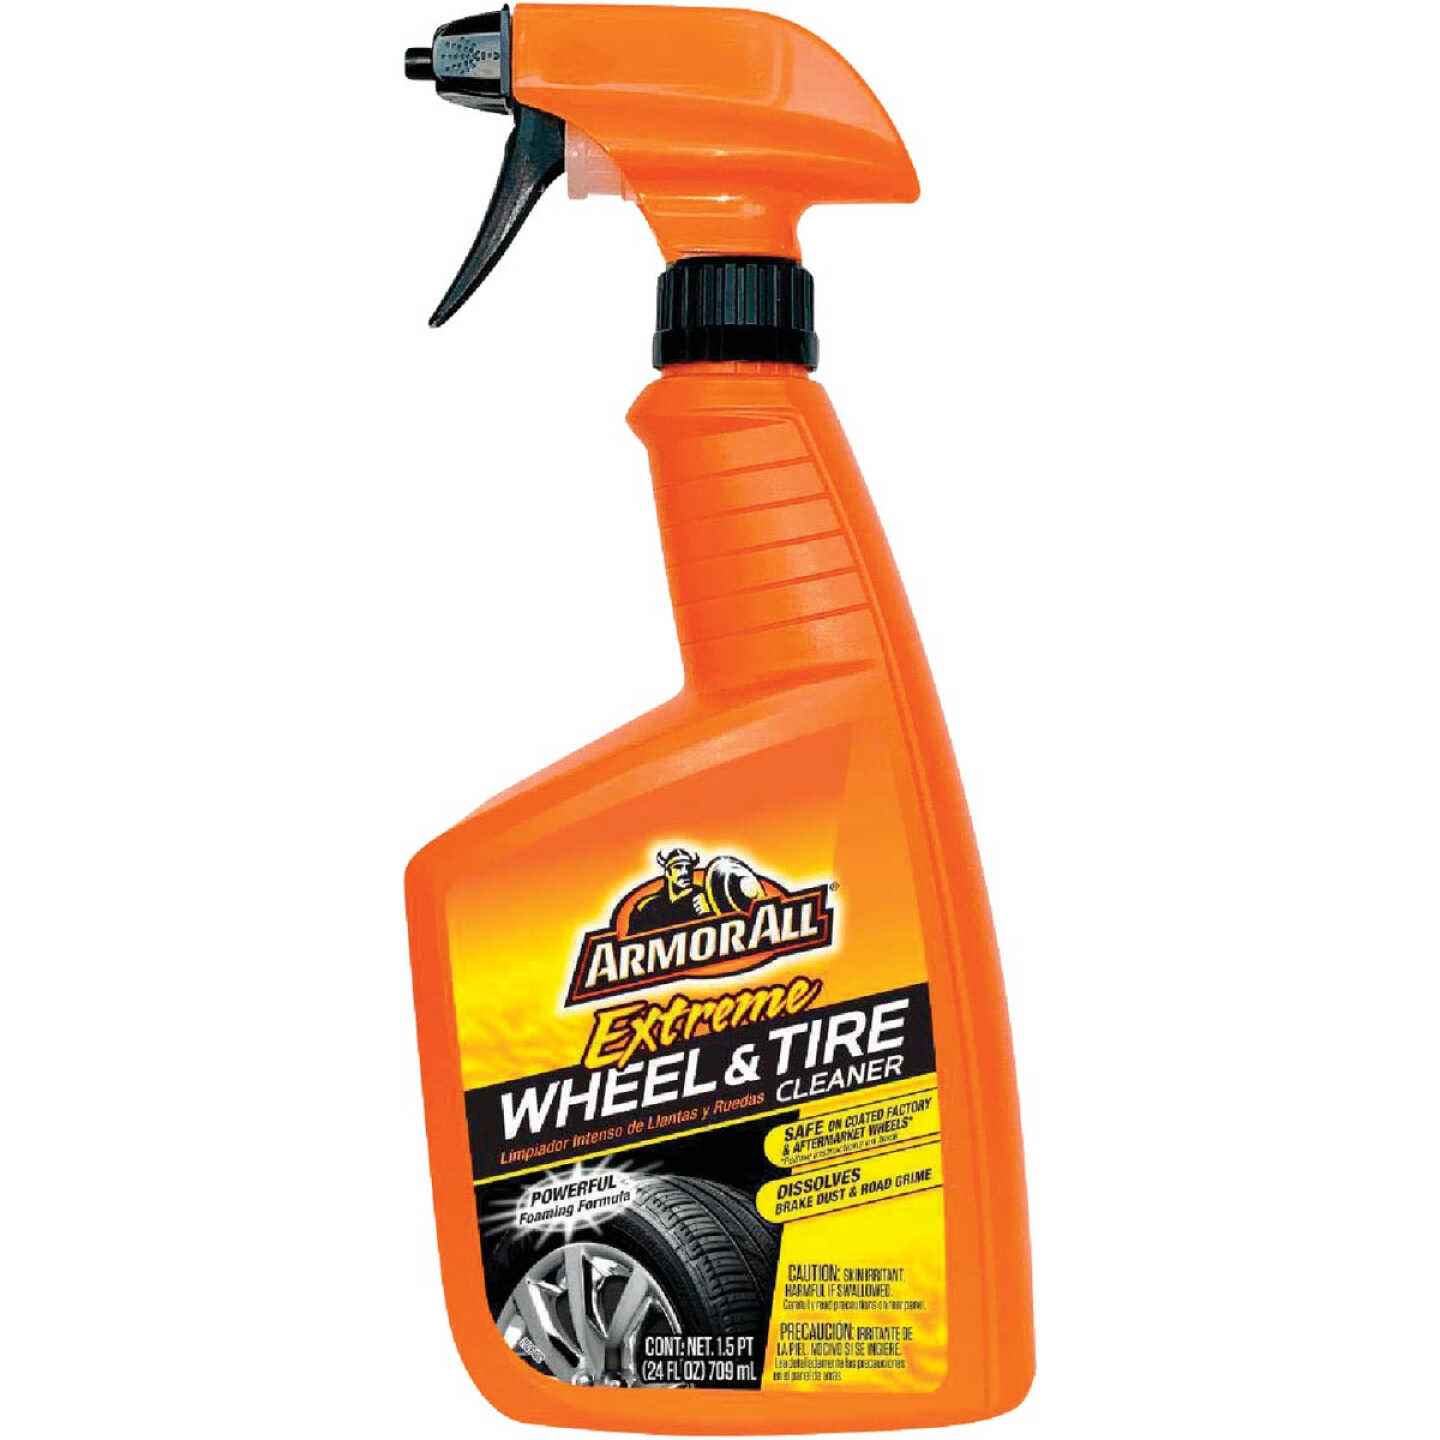 Armor All 24 Oz. Trigger Spray Extreme Wheel and Tire Cleaner Image 1